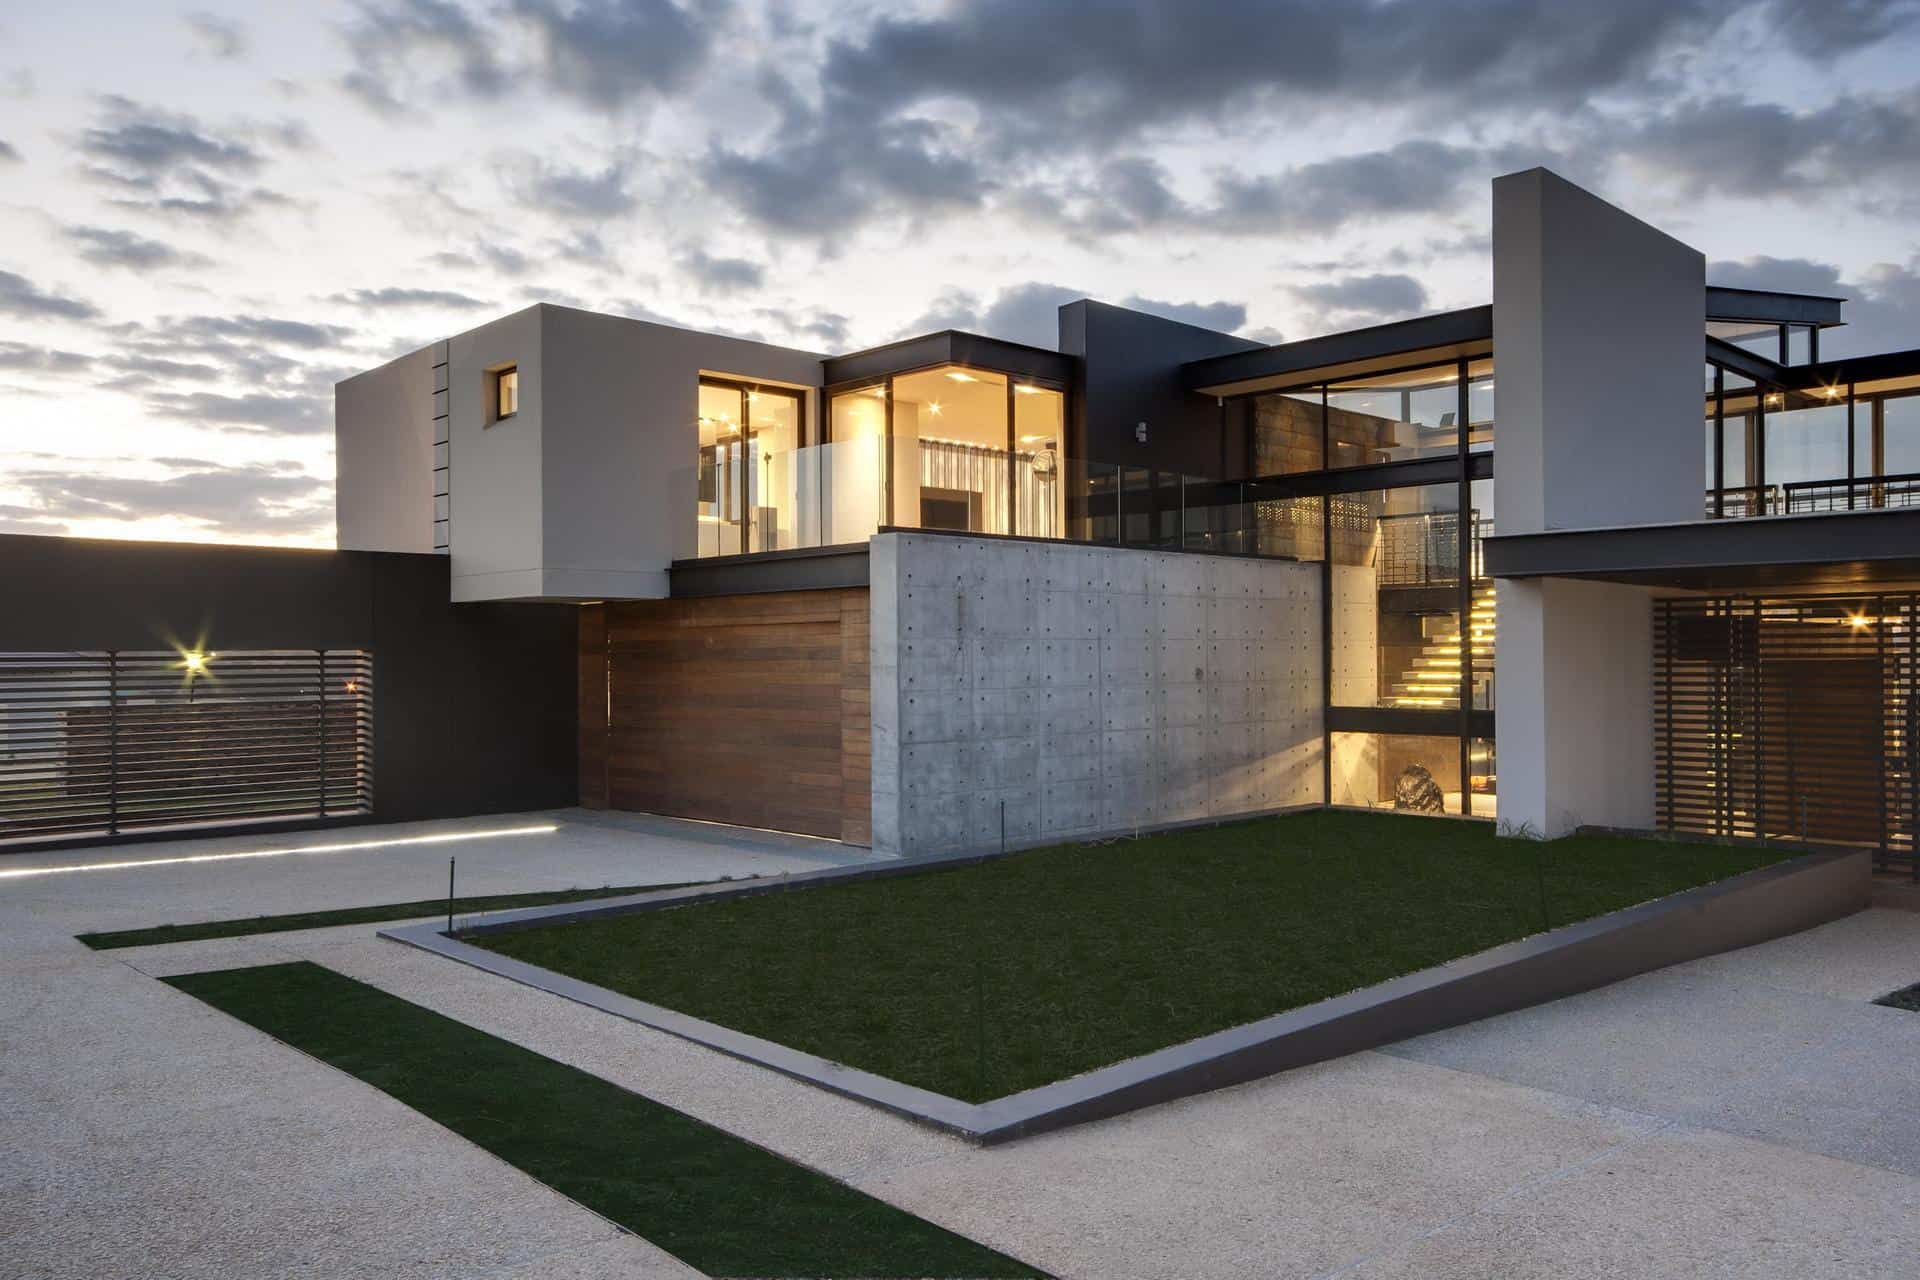 House design inspiration - Concrete Homes Designs Inspiration Photos Trendir